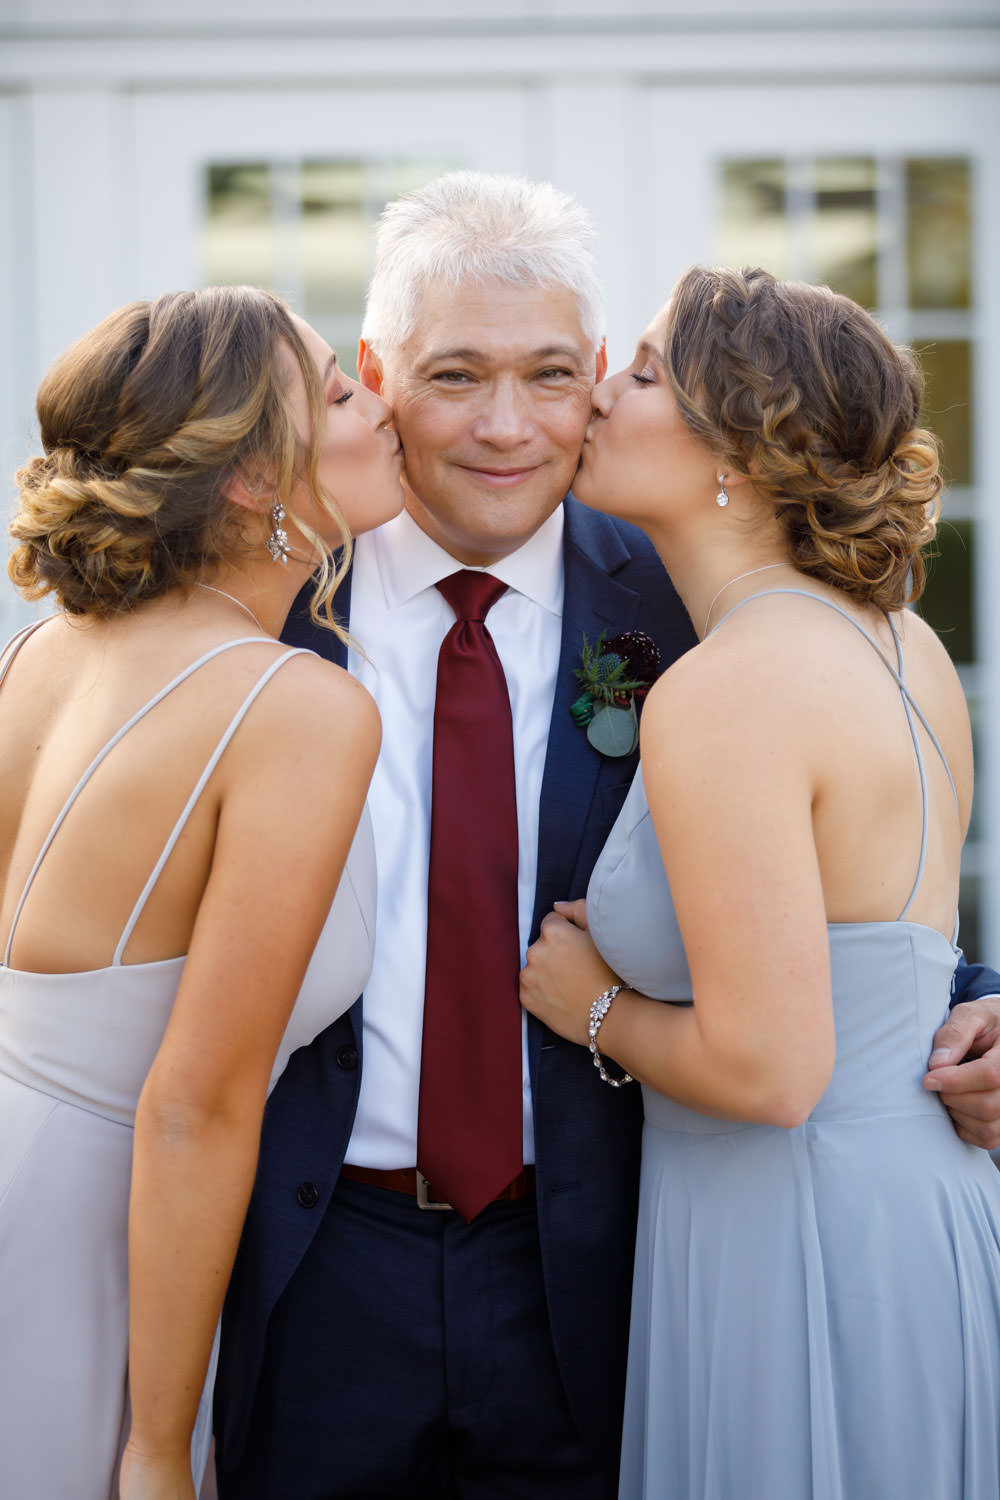 Groom getting kissed on both cheeks by both daughters